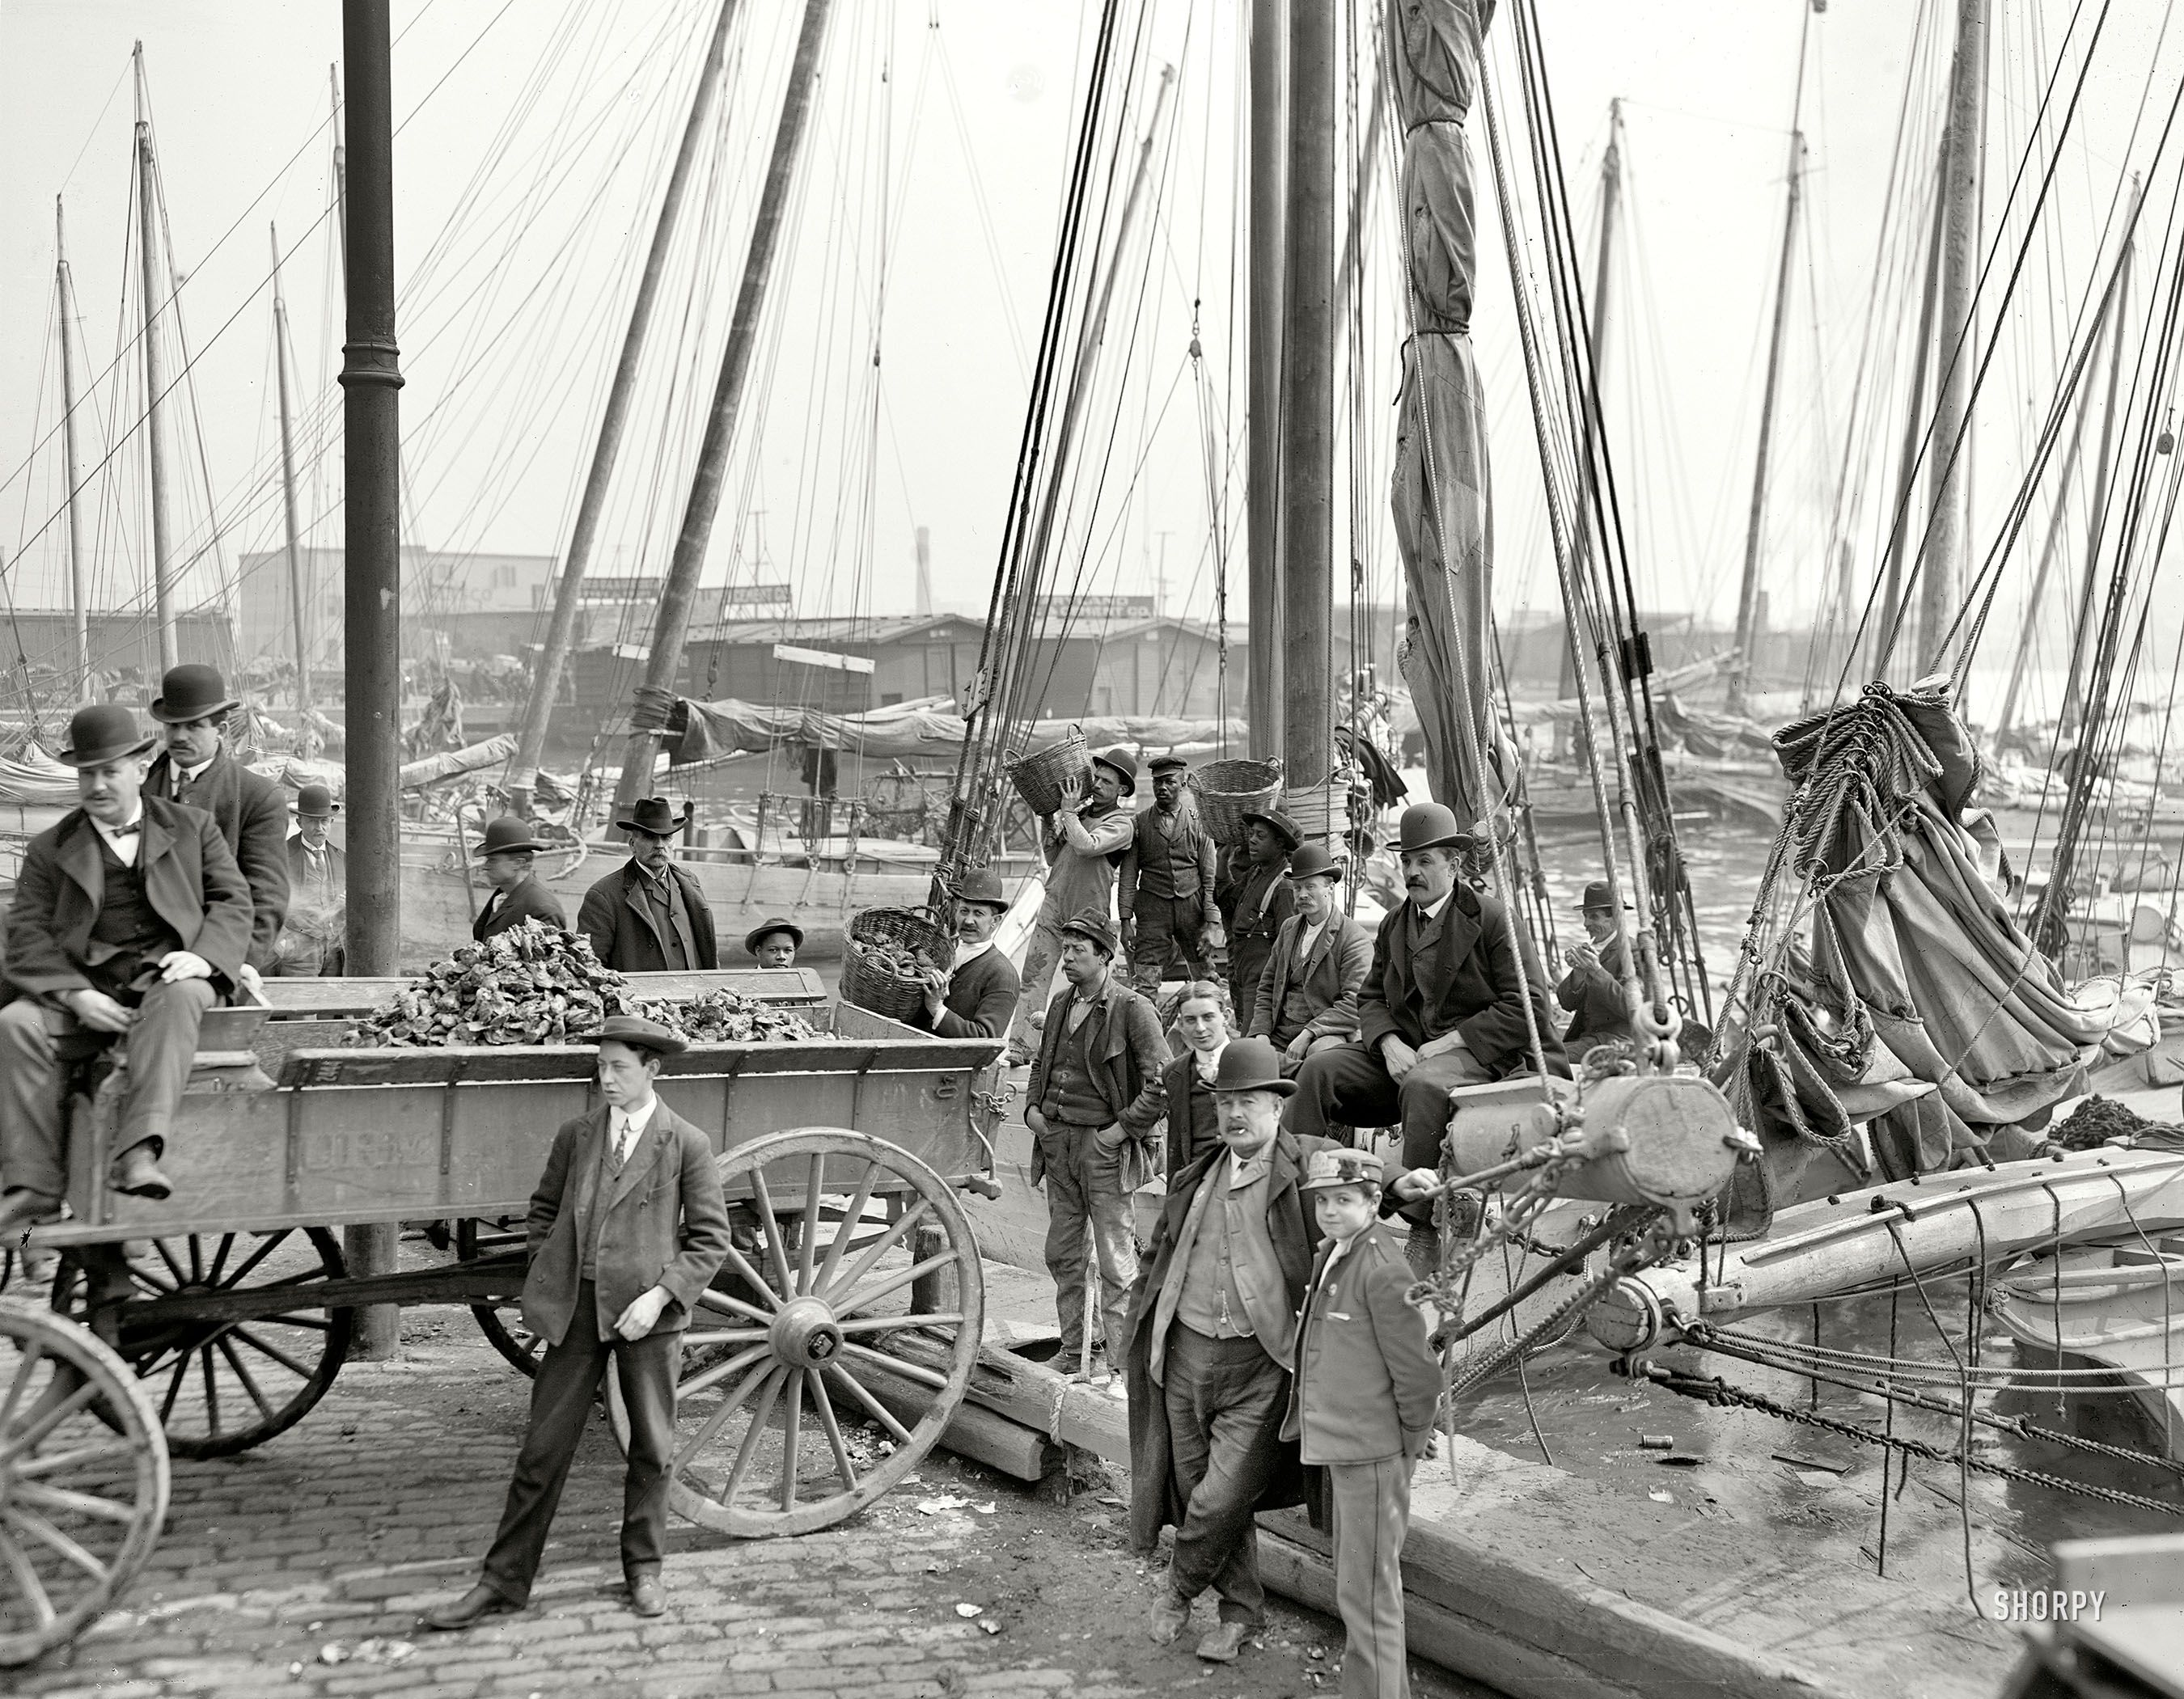 Circa 1905 Unloading Oyster Luggers At Baltimore 8x10 Inch Dry Plate Glass Negative Detroit Publishing Company Old Photos Photo Old Pictures